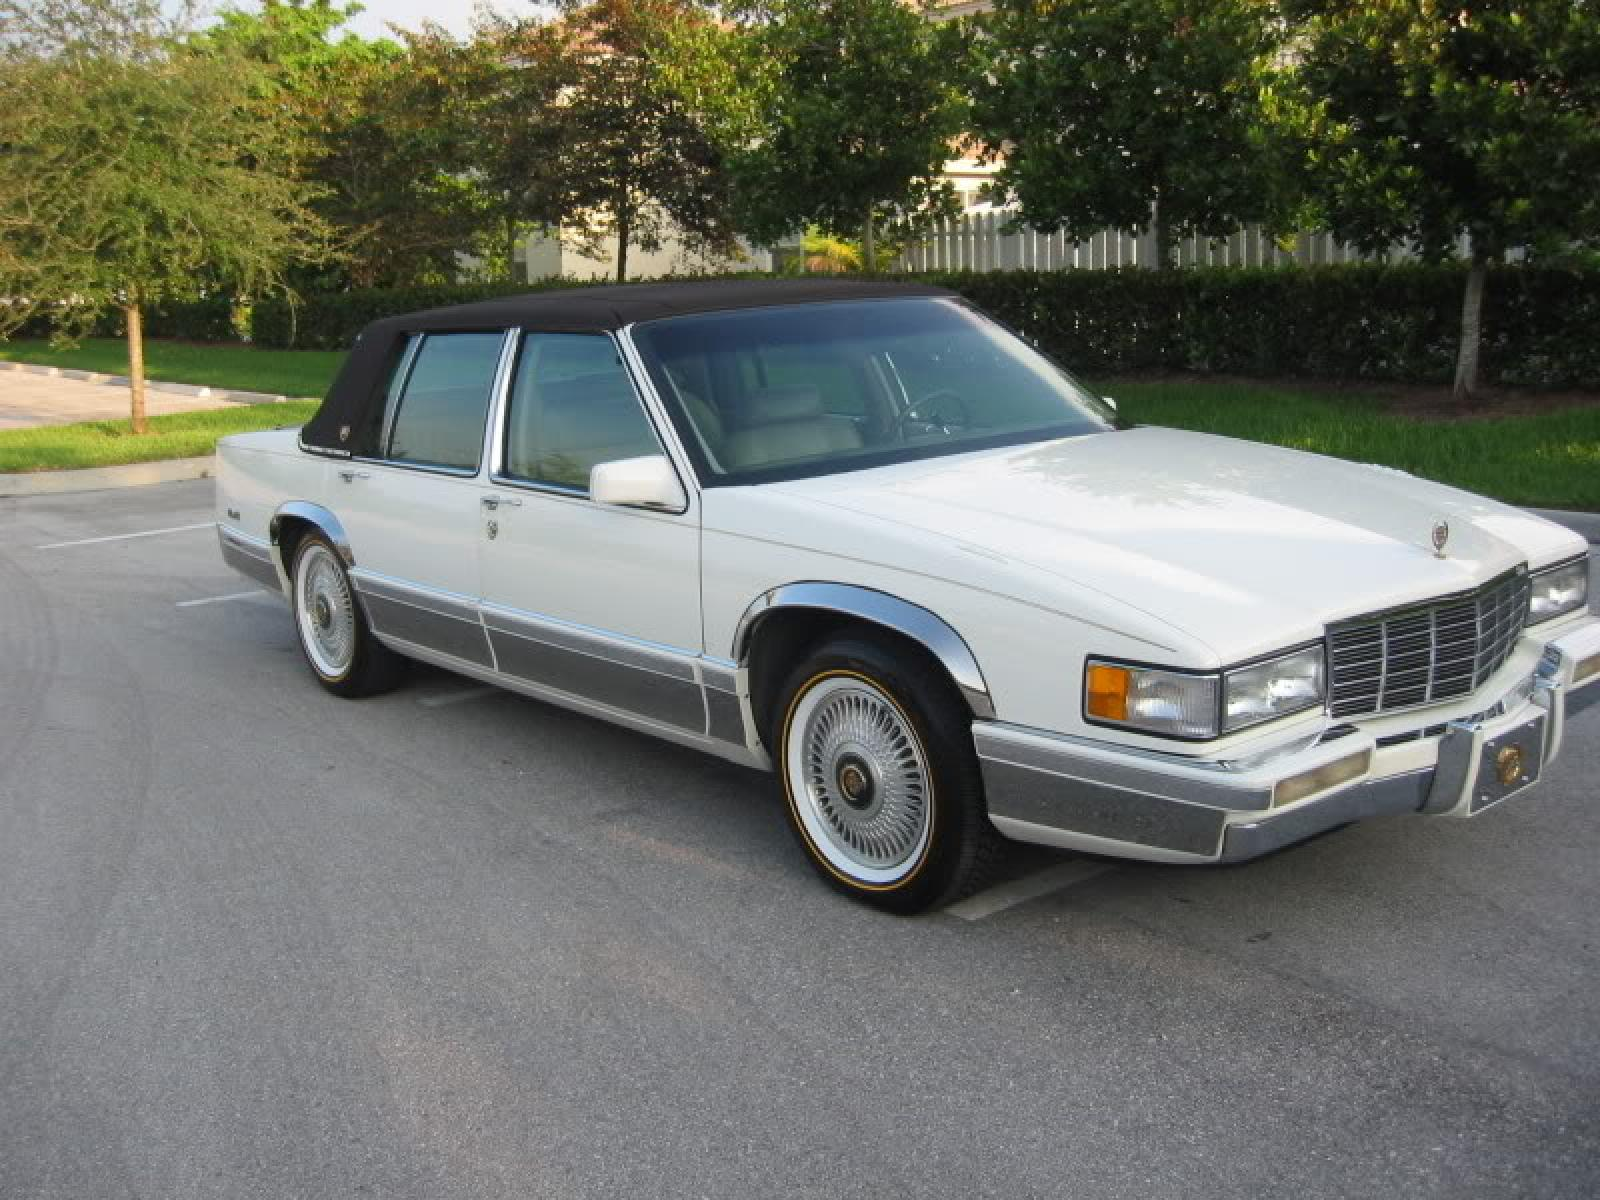 1992 cadillac deville information and photos zombiedrive. Cars Review. Best American Auto & Cars Review